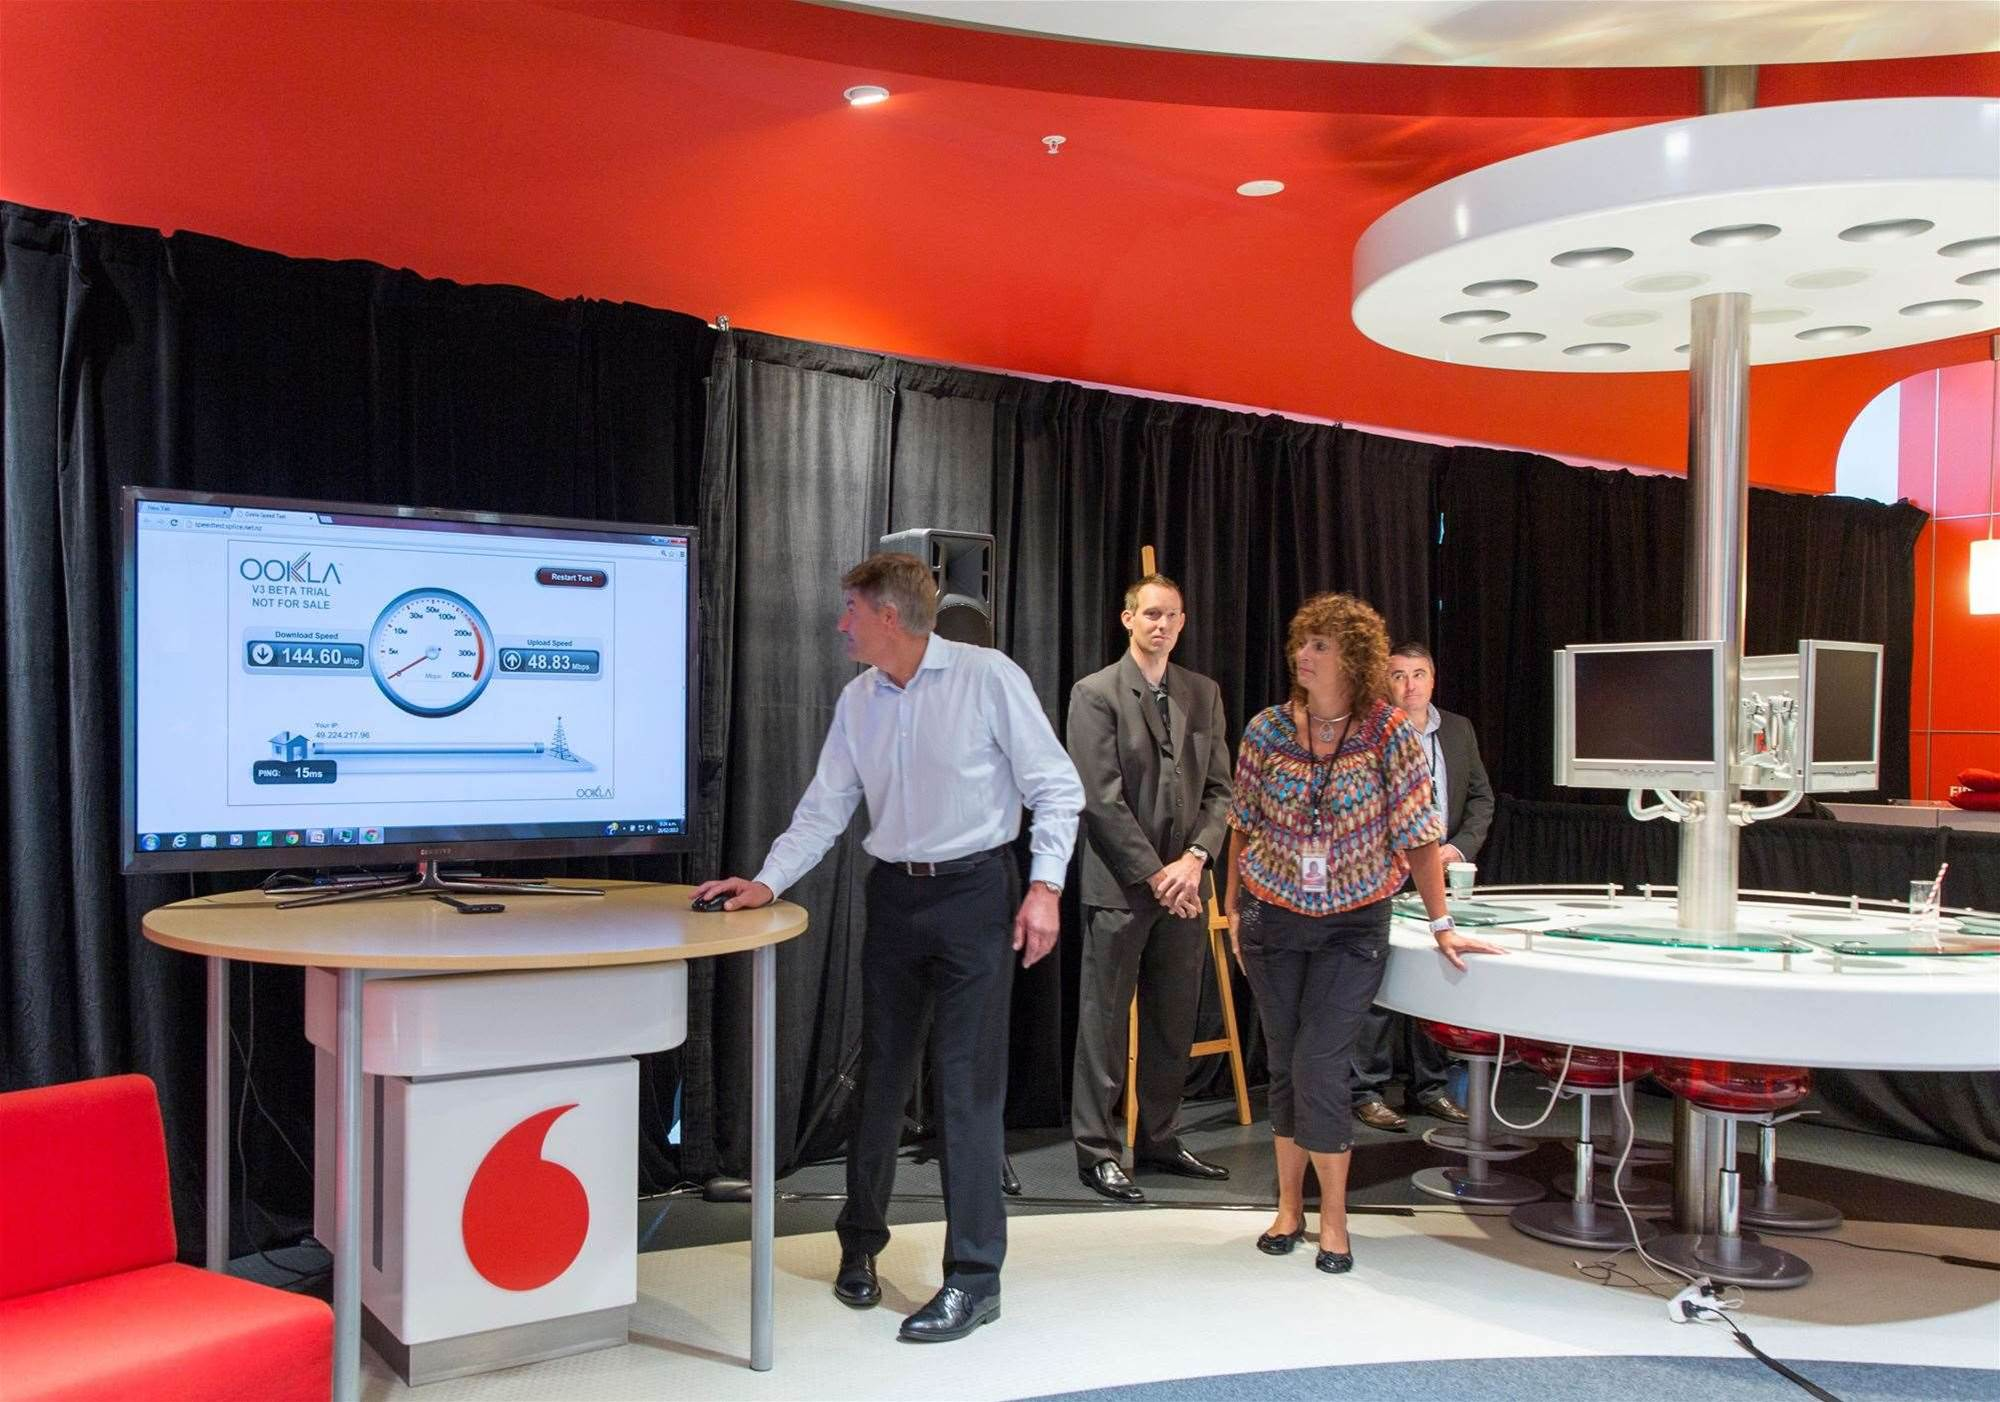 Vodafone head of networks Tony Baird shows off the 4G speeds